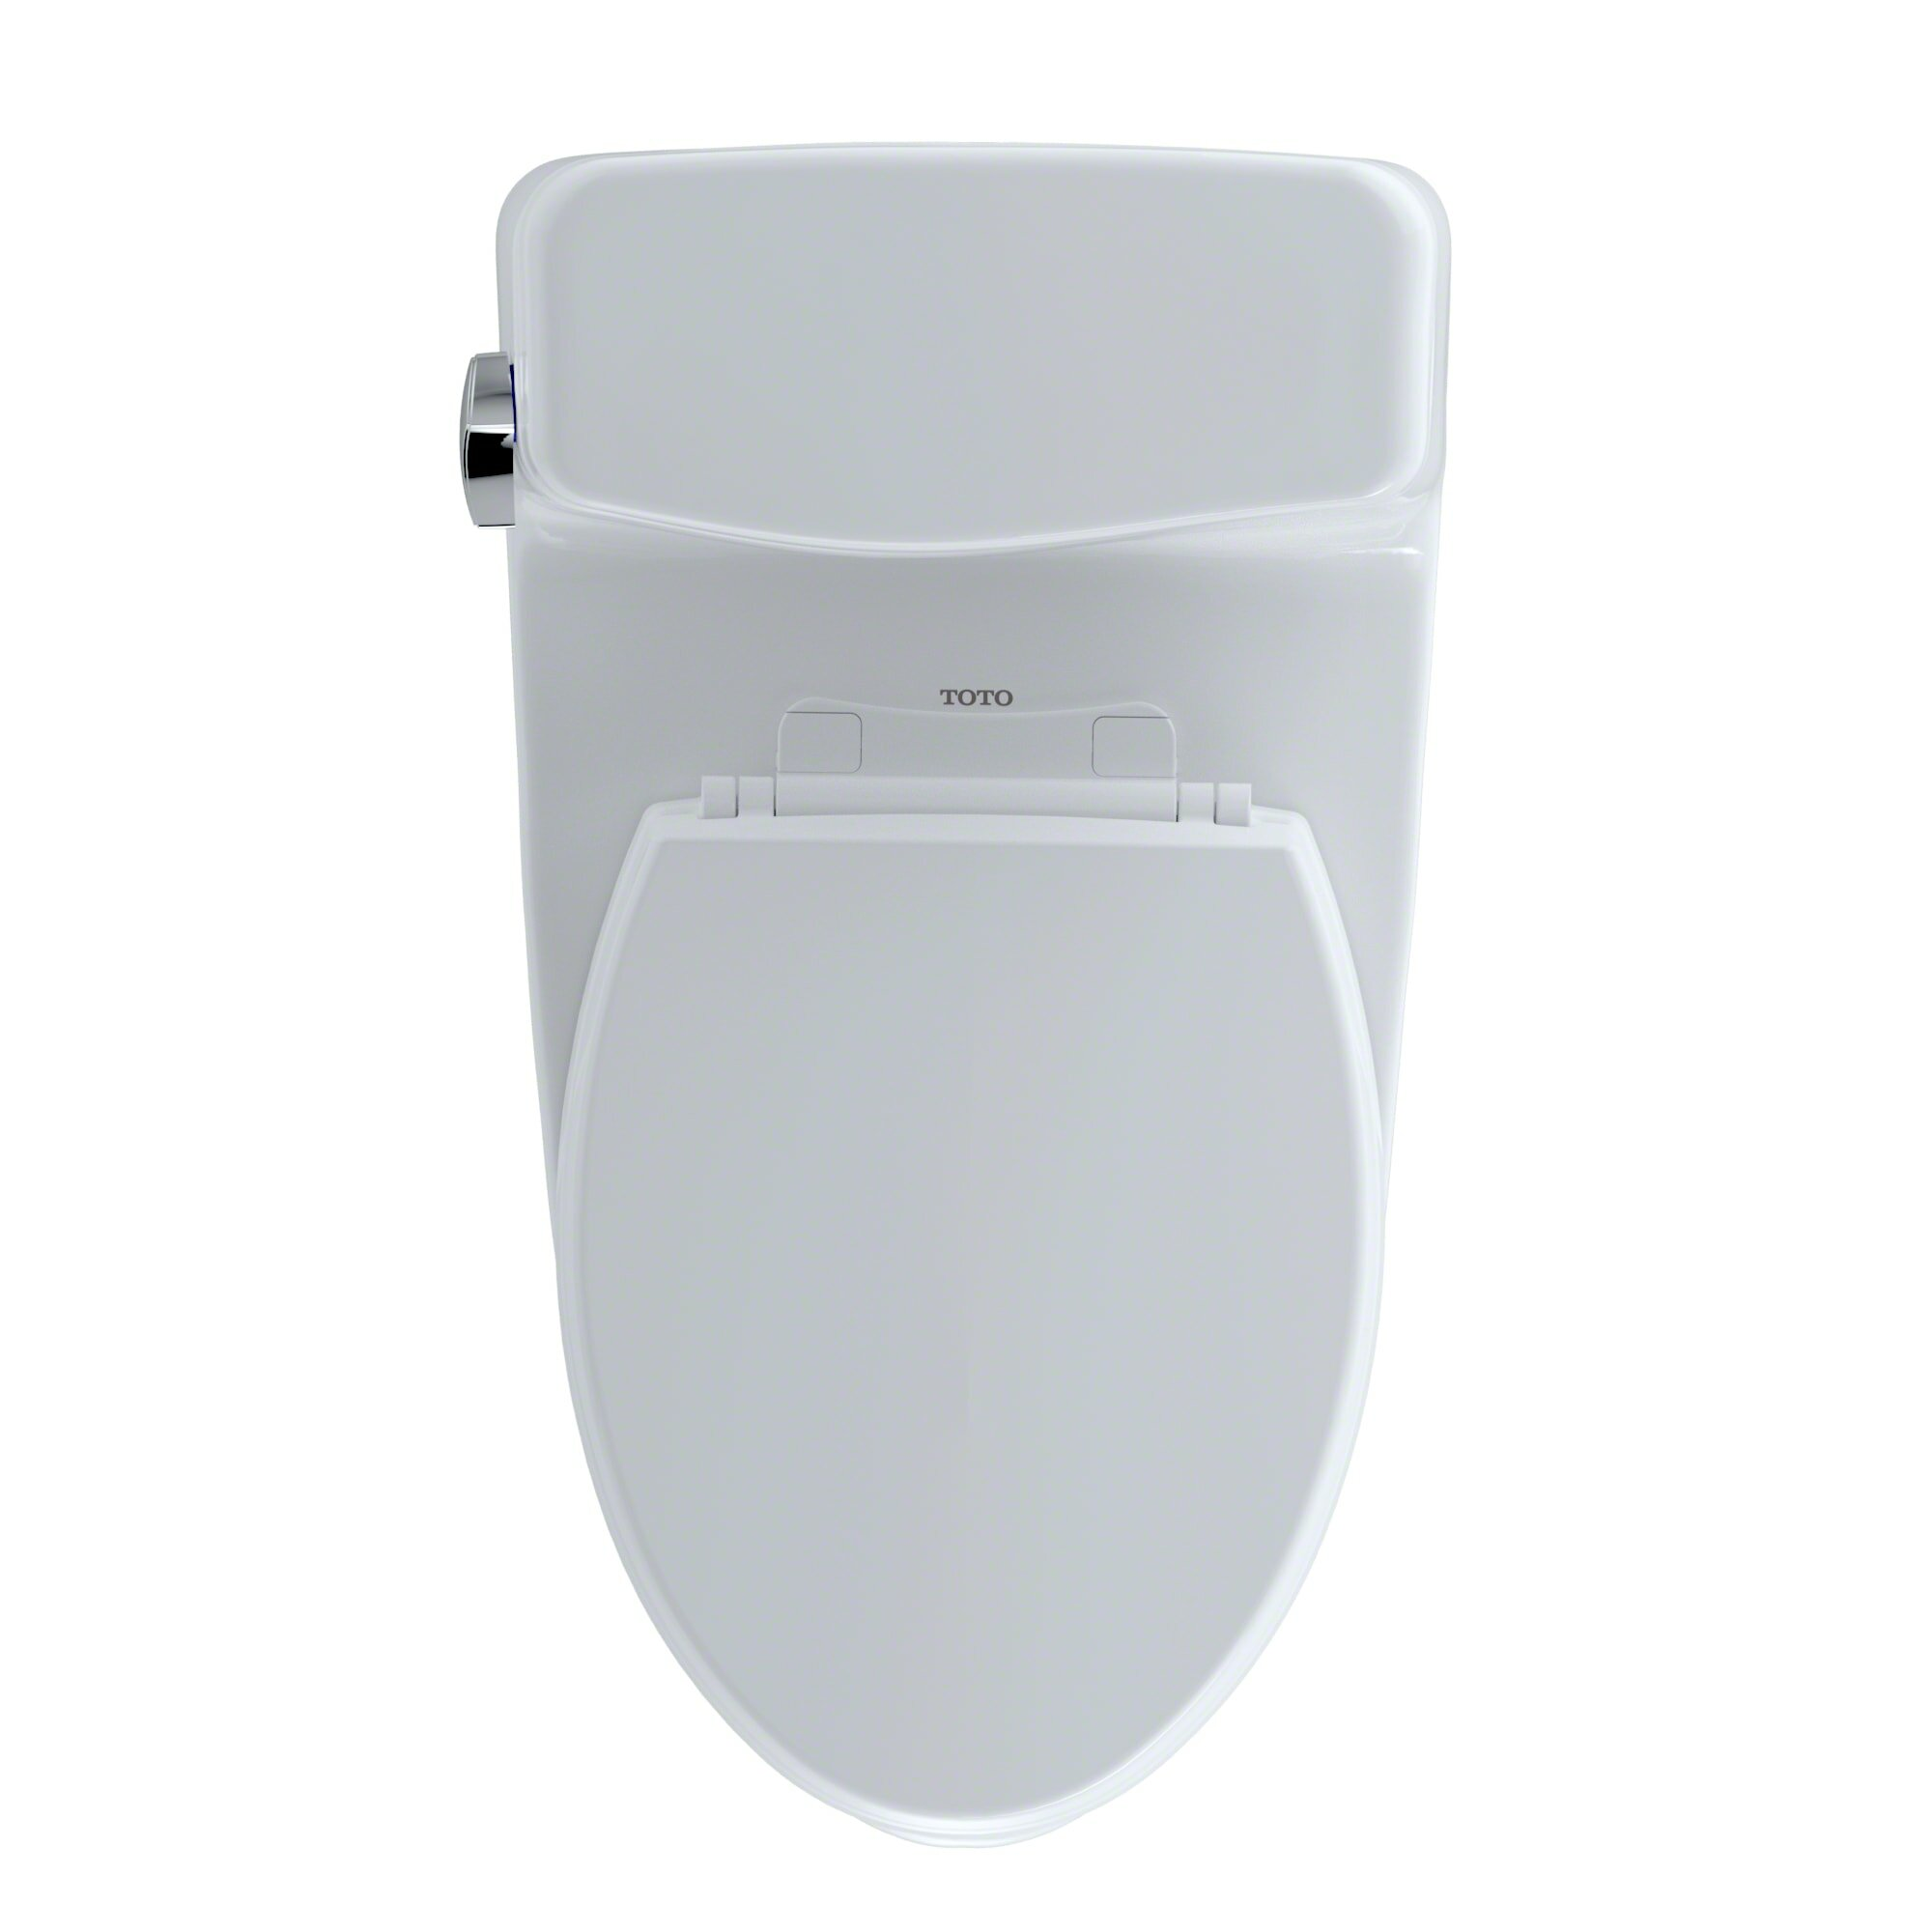 Lumawarm Toilet Seat Review.Brondell LumaWarm Heated Toilet Seat ...